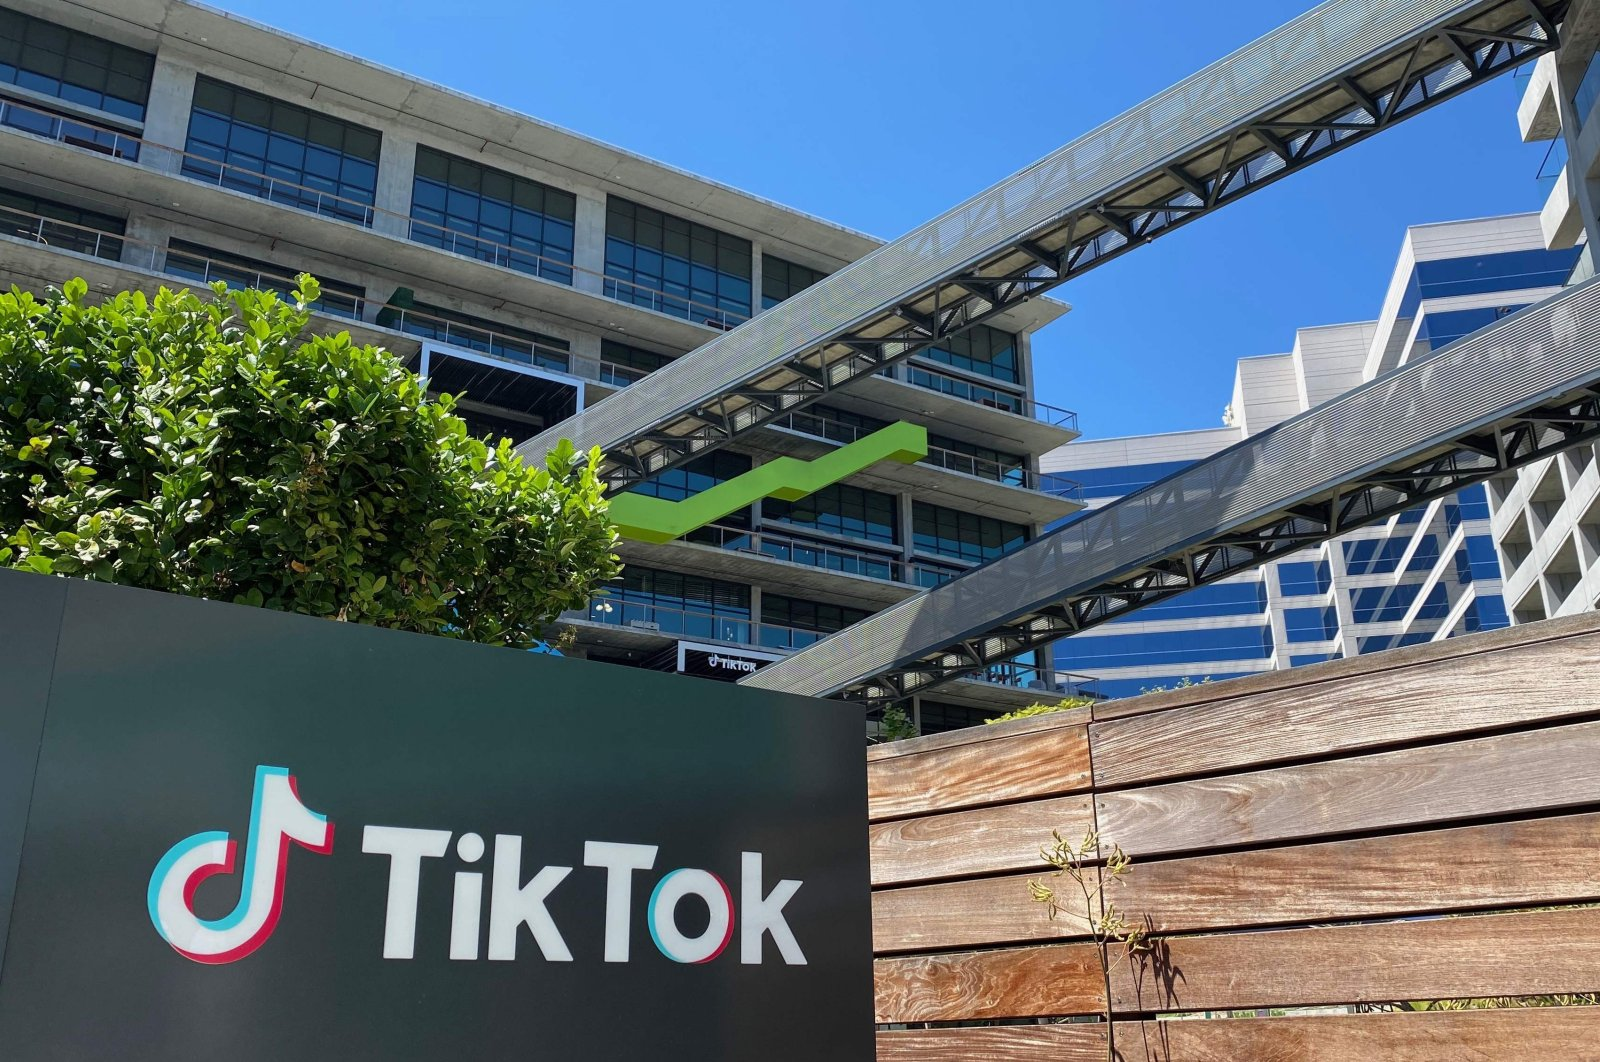 The logo of the Chinese video app TikTok is seen on the side of the company's new office space at the C3 campus in Culver City, in the westside of Los Angeles, U.S., Aug. 11, 2020. (AFP Photo)